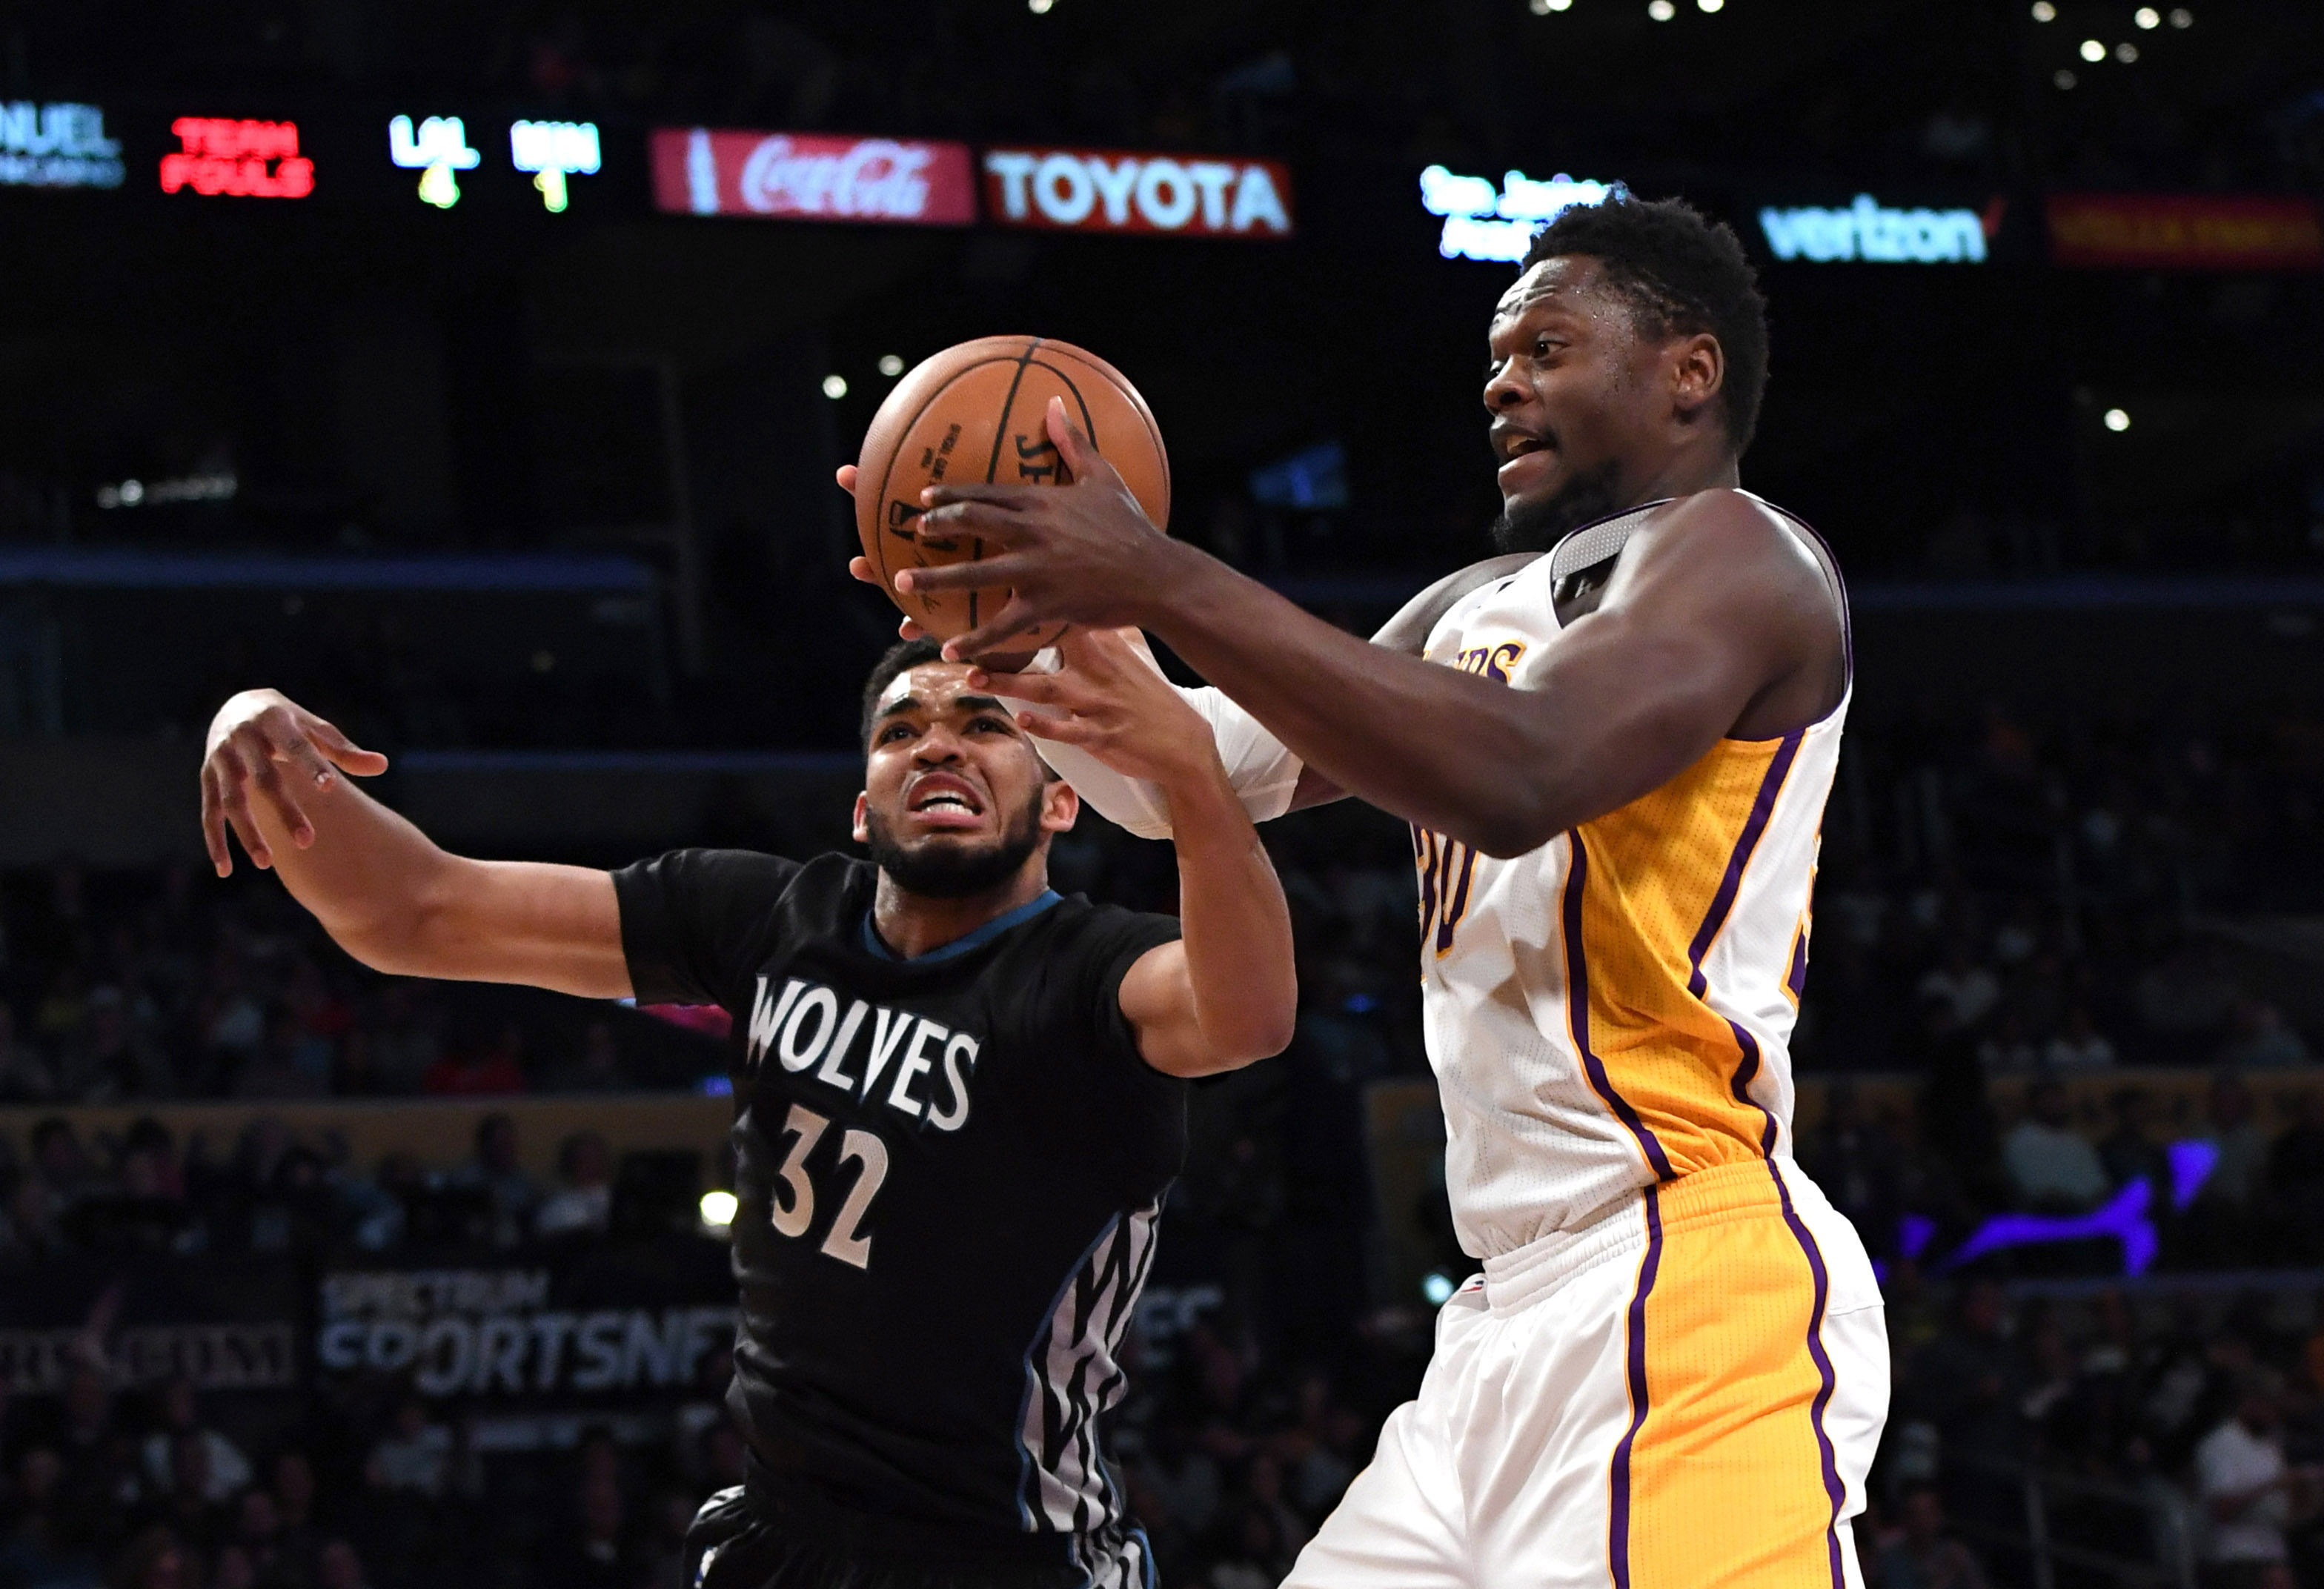 timberwolves vs lakers